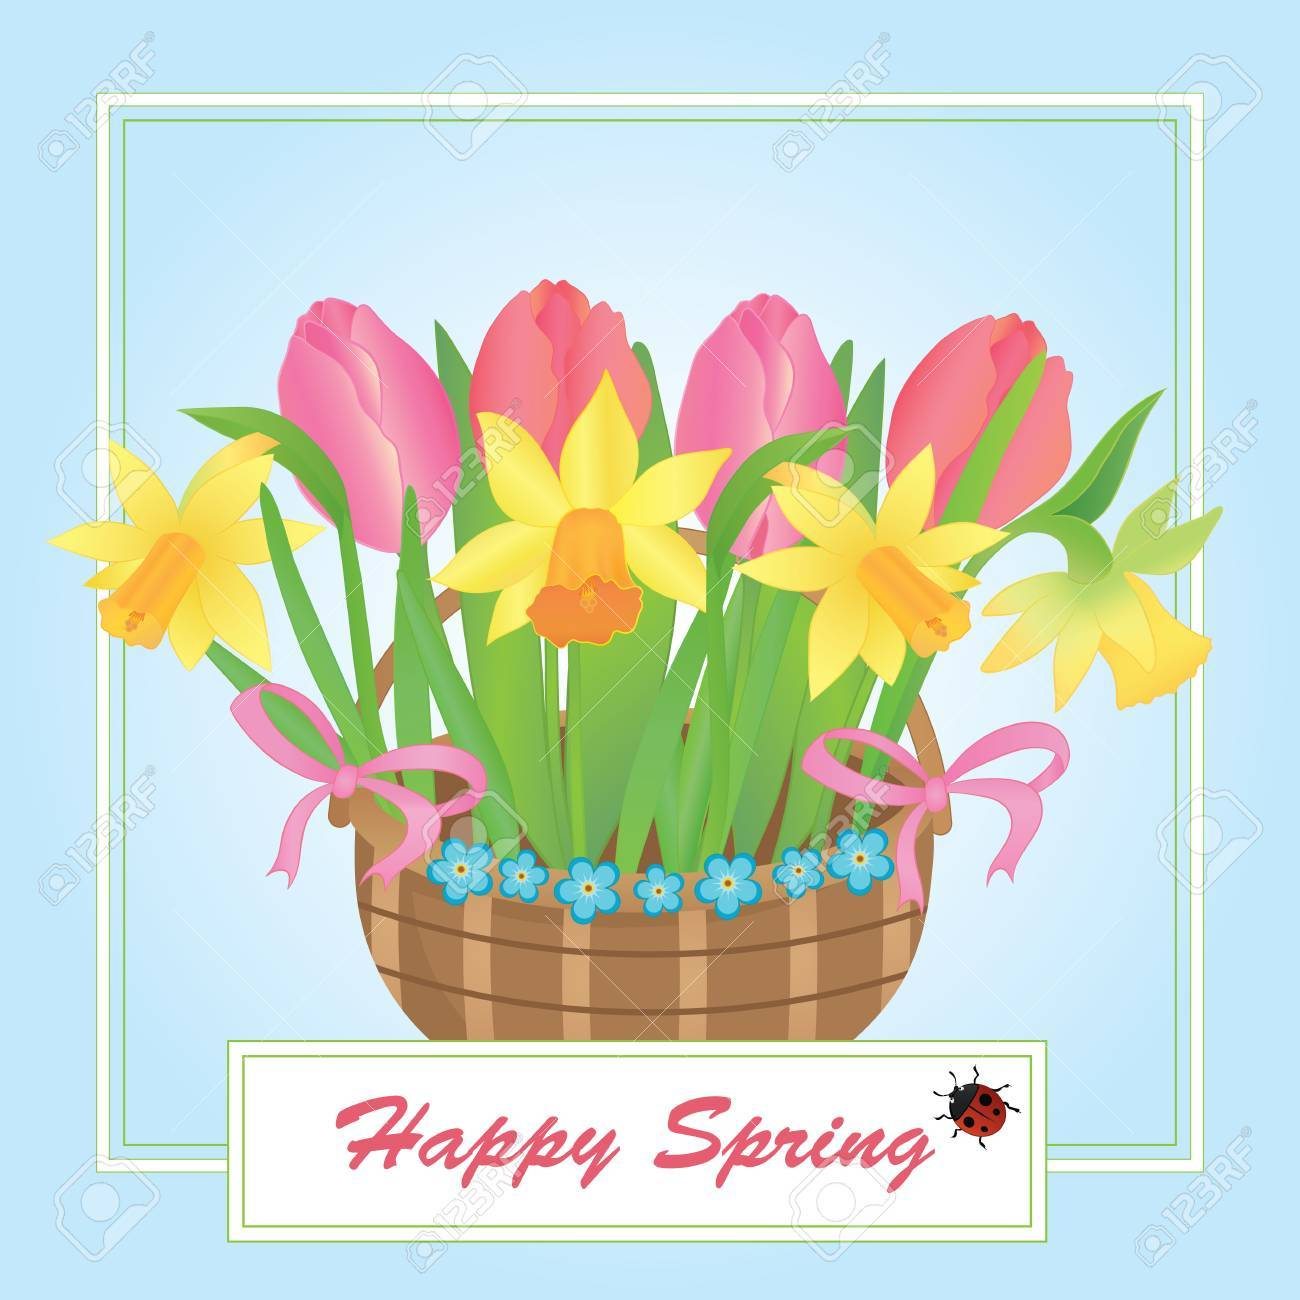 Illustration Of A Basket With Spring Flowers Royalty Free Cliparts